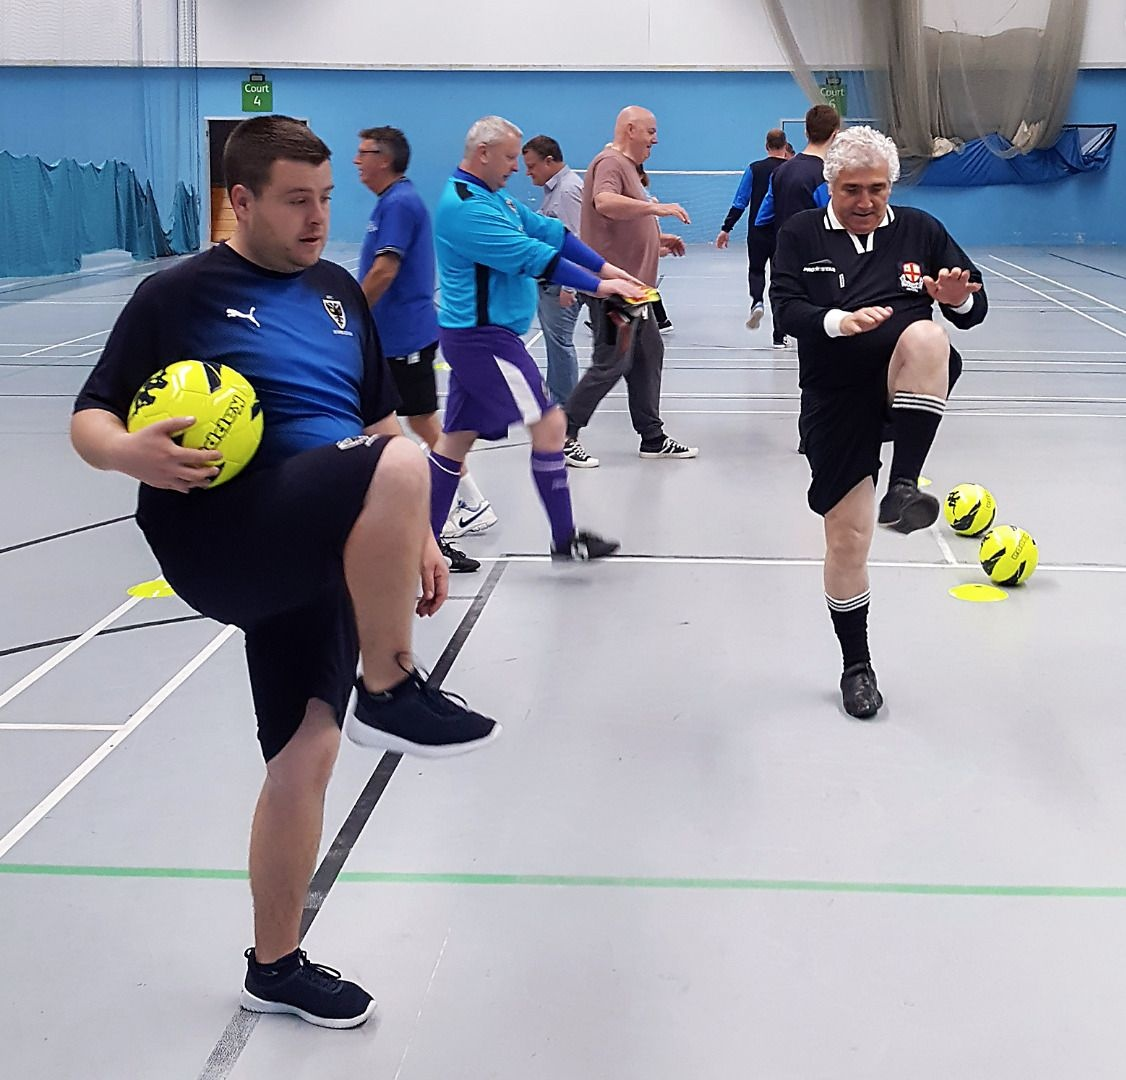 Over 50s walking football in Merton